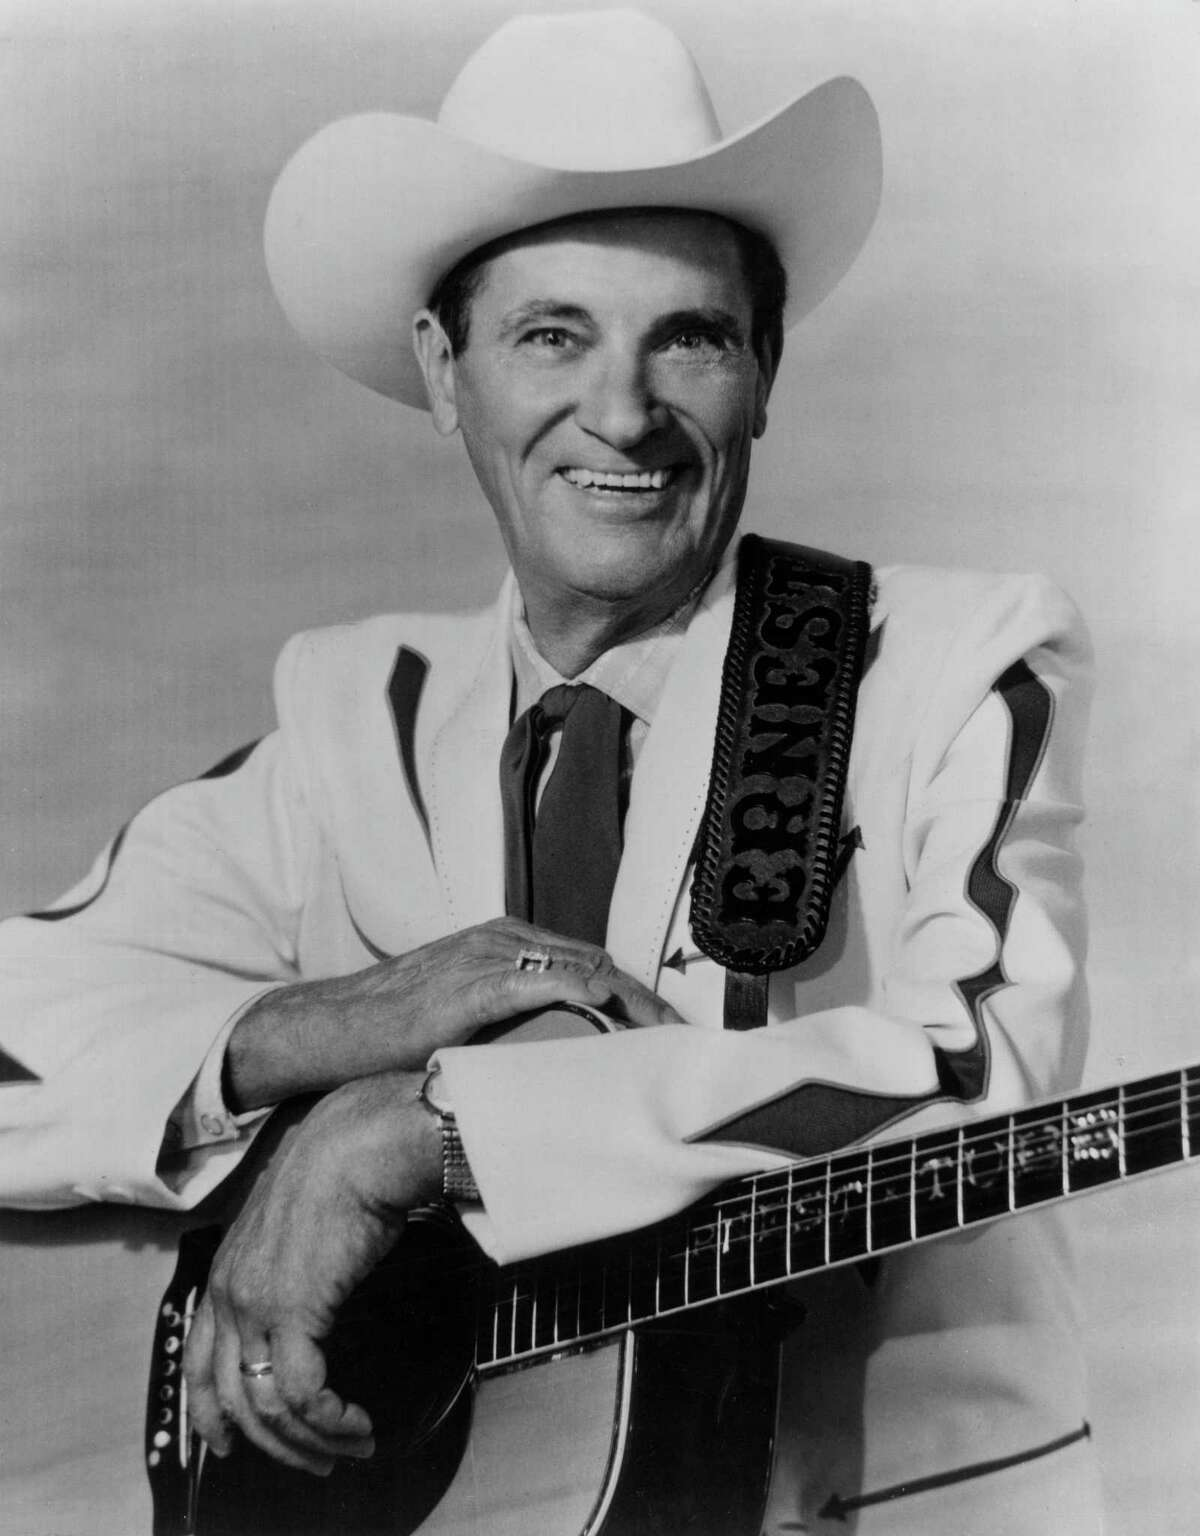 Famed country singer Ernest Tubb rode his bicycle, guitar strapped to his back, to KONO studios back in the late 1930s to perform songs live each morning on the radio station during its early years. The Texas-born star is seen here in 1978.